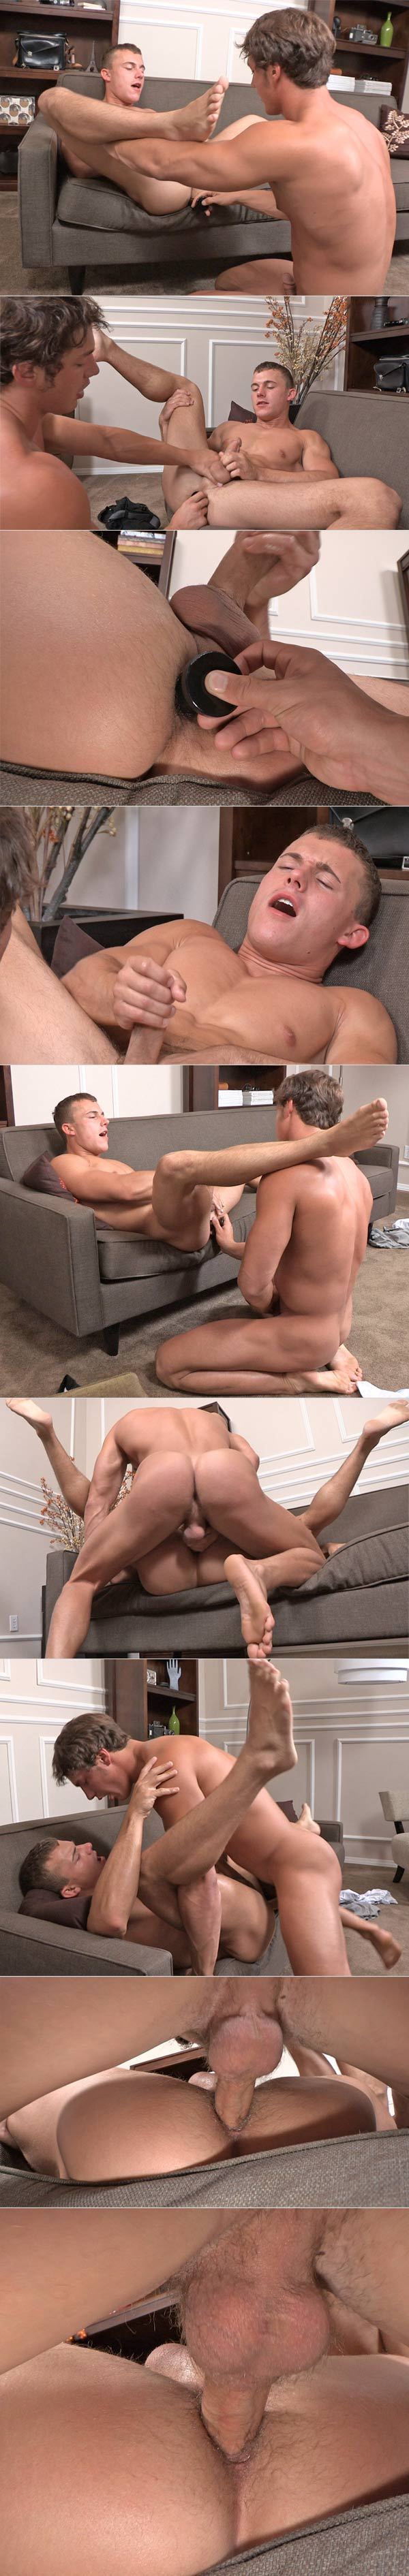 Joshua & Brandon (Bareback) at SeanCody